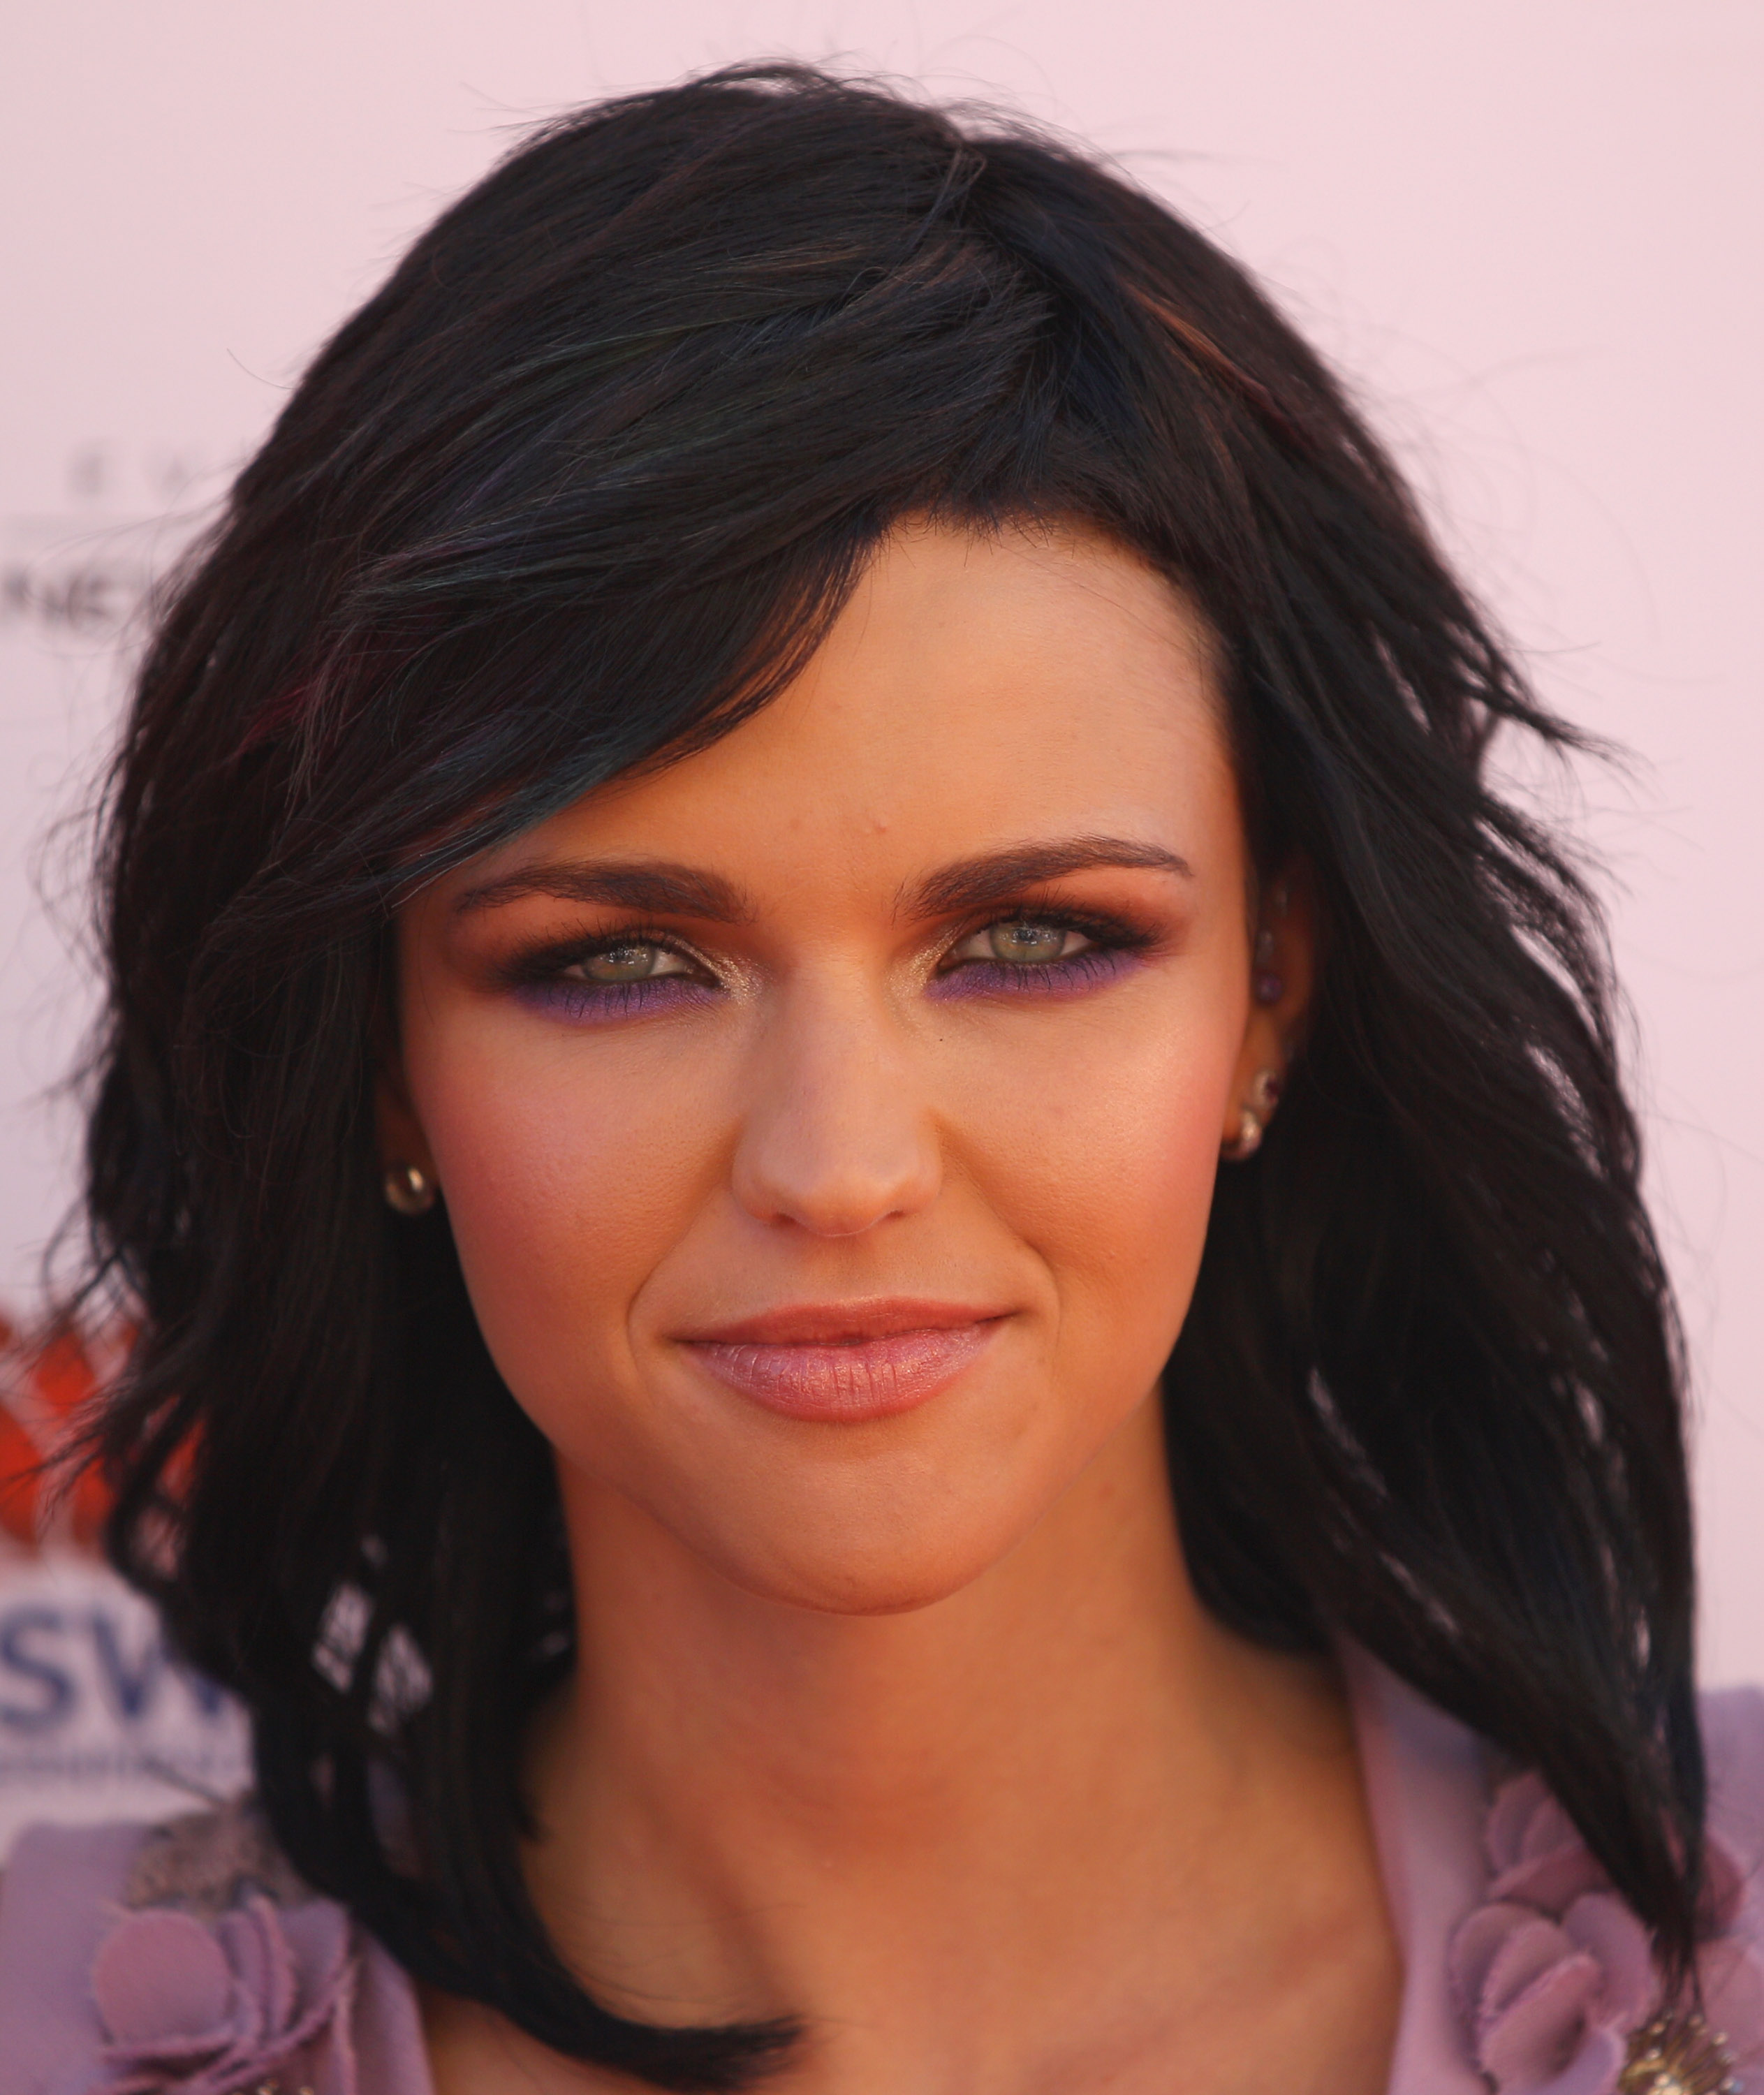 Terrific Ruby Rose Long And Short Hair Beauty And Makeup Looks Tattoos Short Hairstyles For Black Women Fulllsitofus